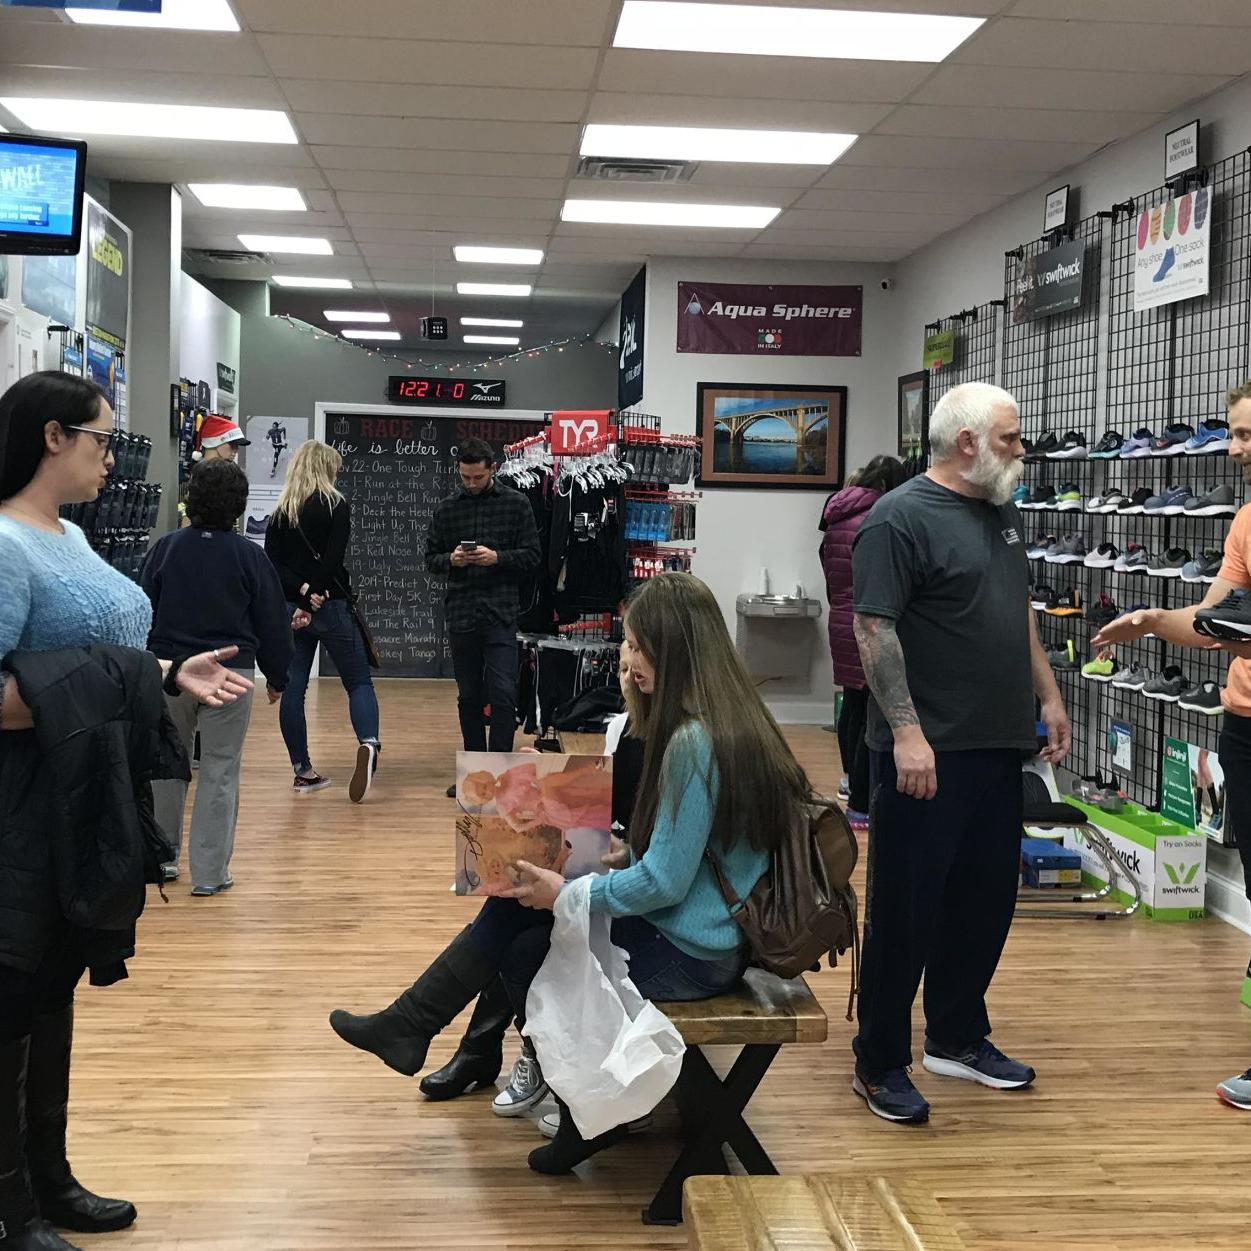 Cold, rainy weather doesn't deter shoppers on Small Business